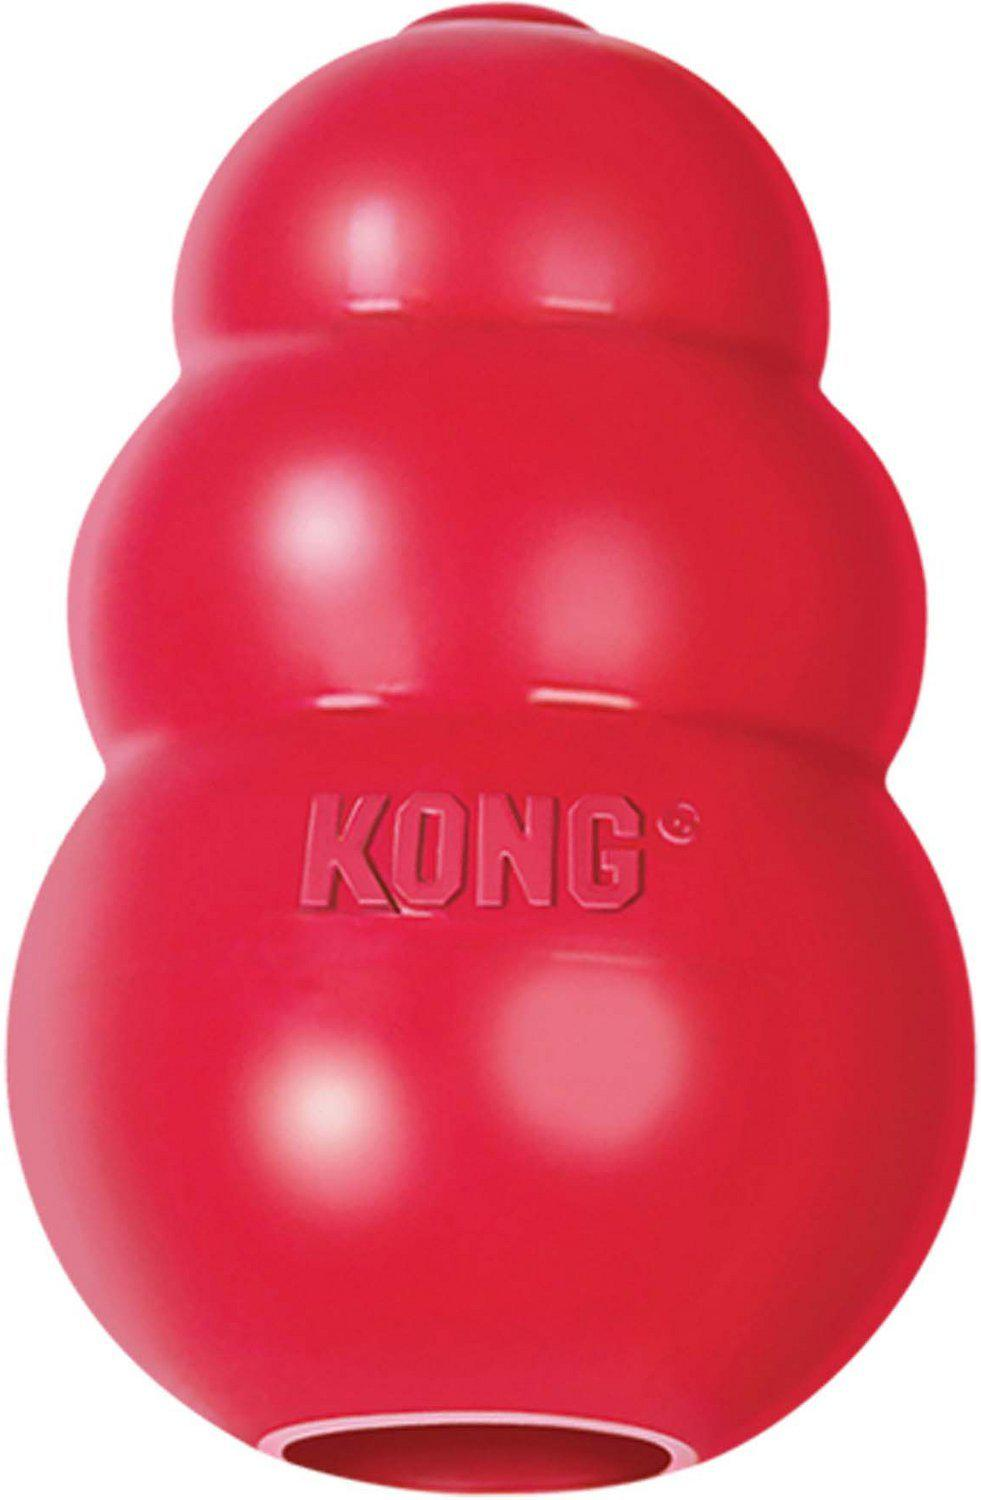 Kong Classic Dog Toy-Le Pup Pet Supplies and Grooming